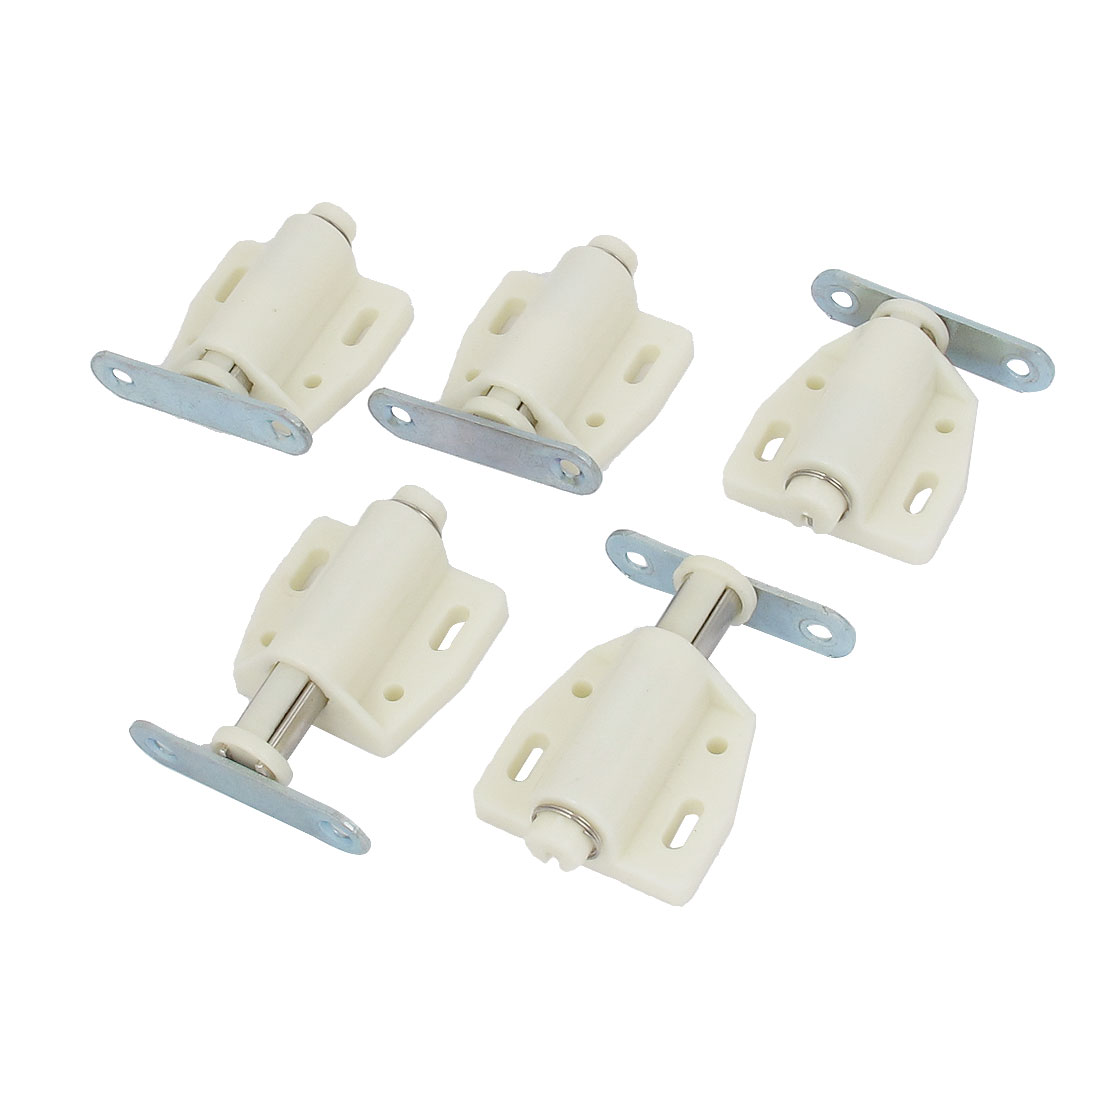 Cabinet Furniture Door Magnetic Push Open Catch Latch White 5 Pcs